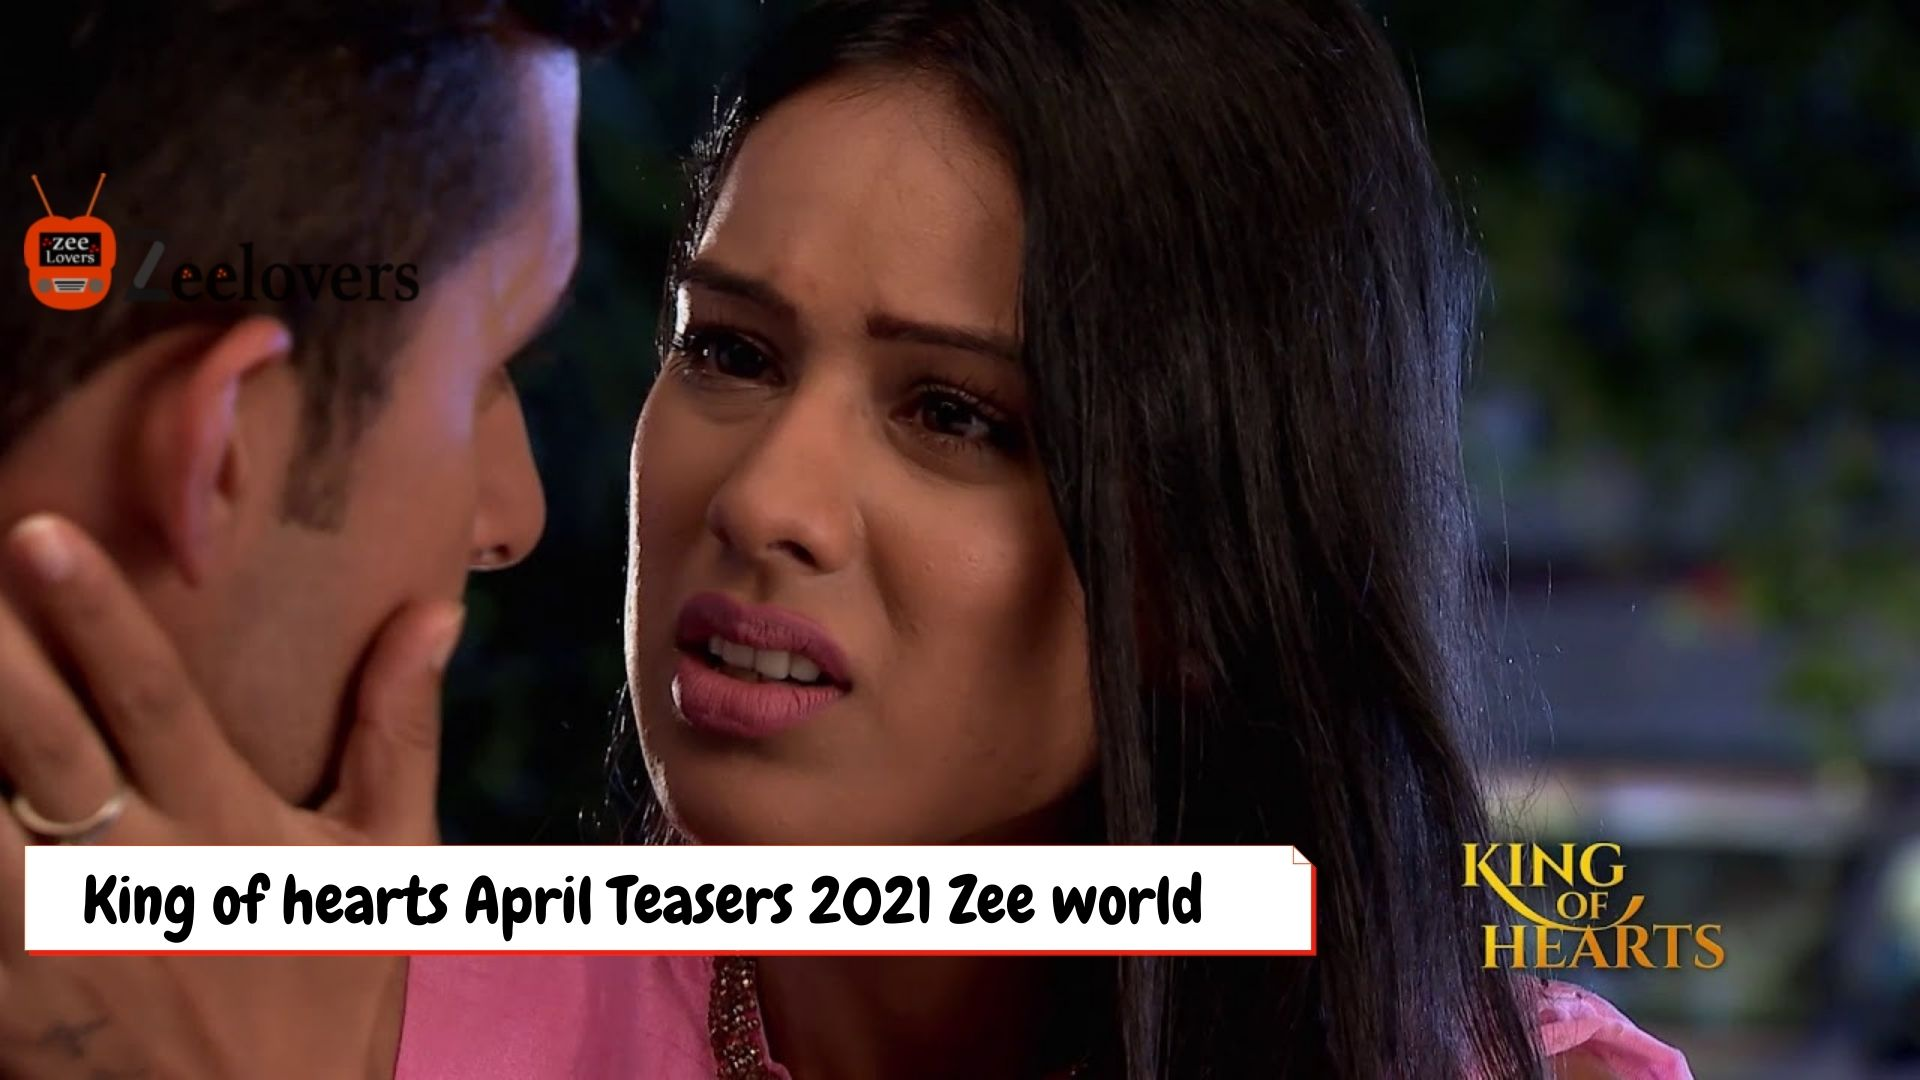 King of Hearts March Teasers 2021